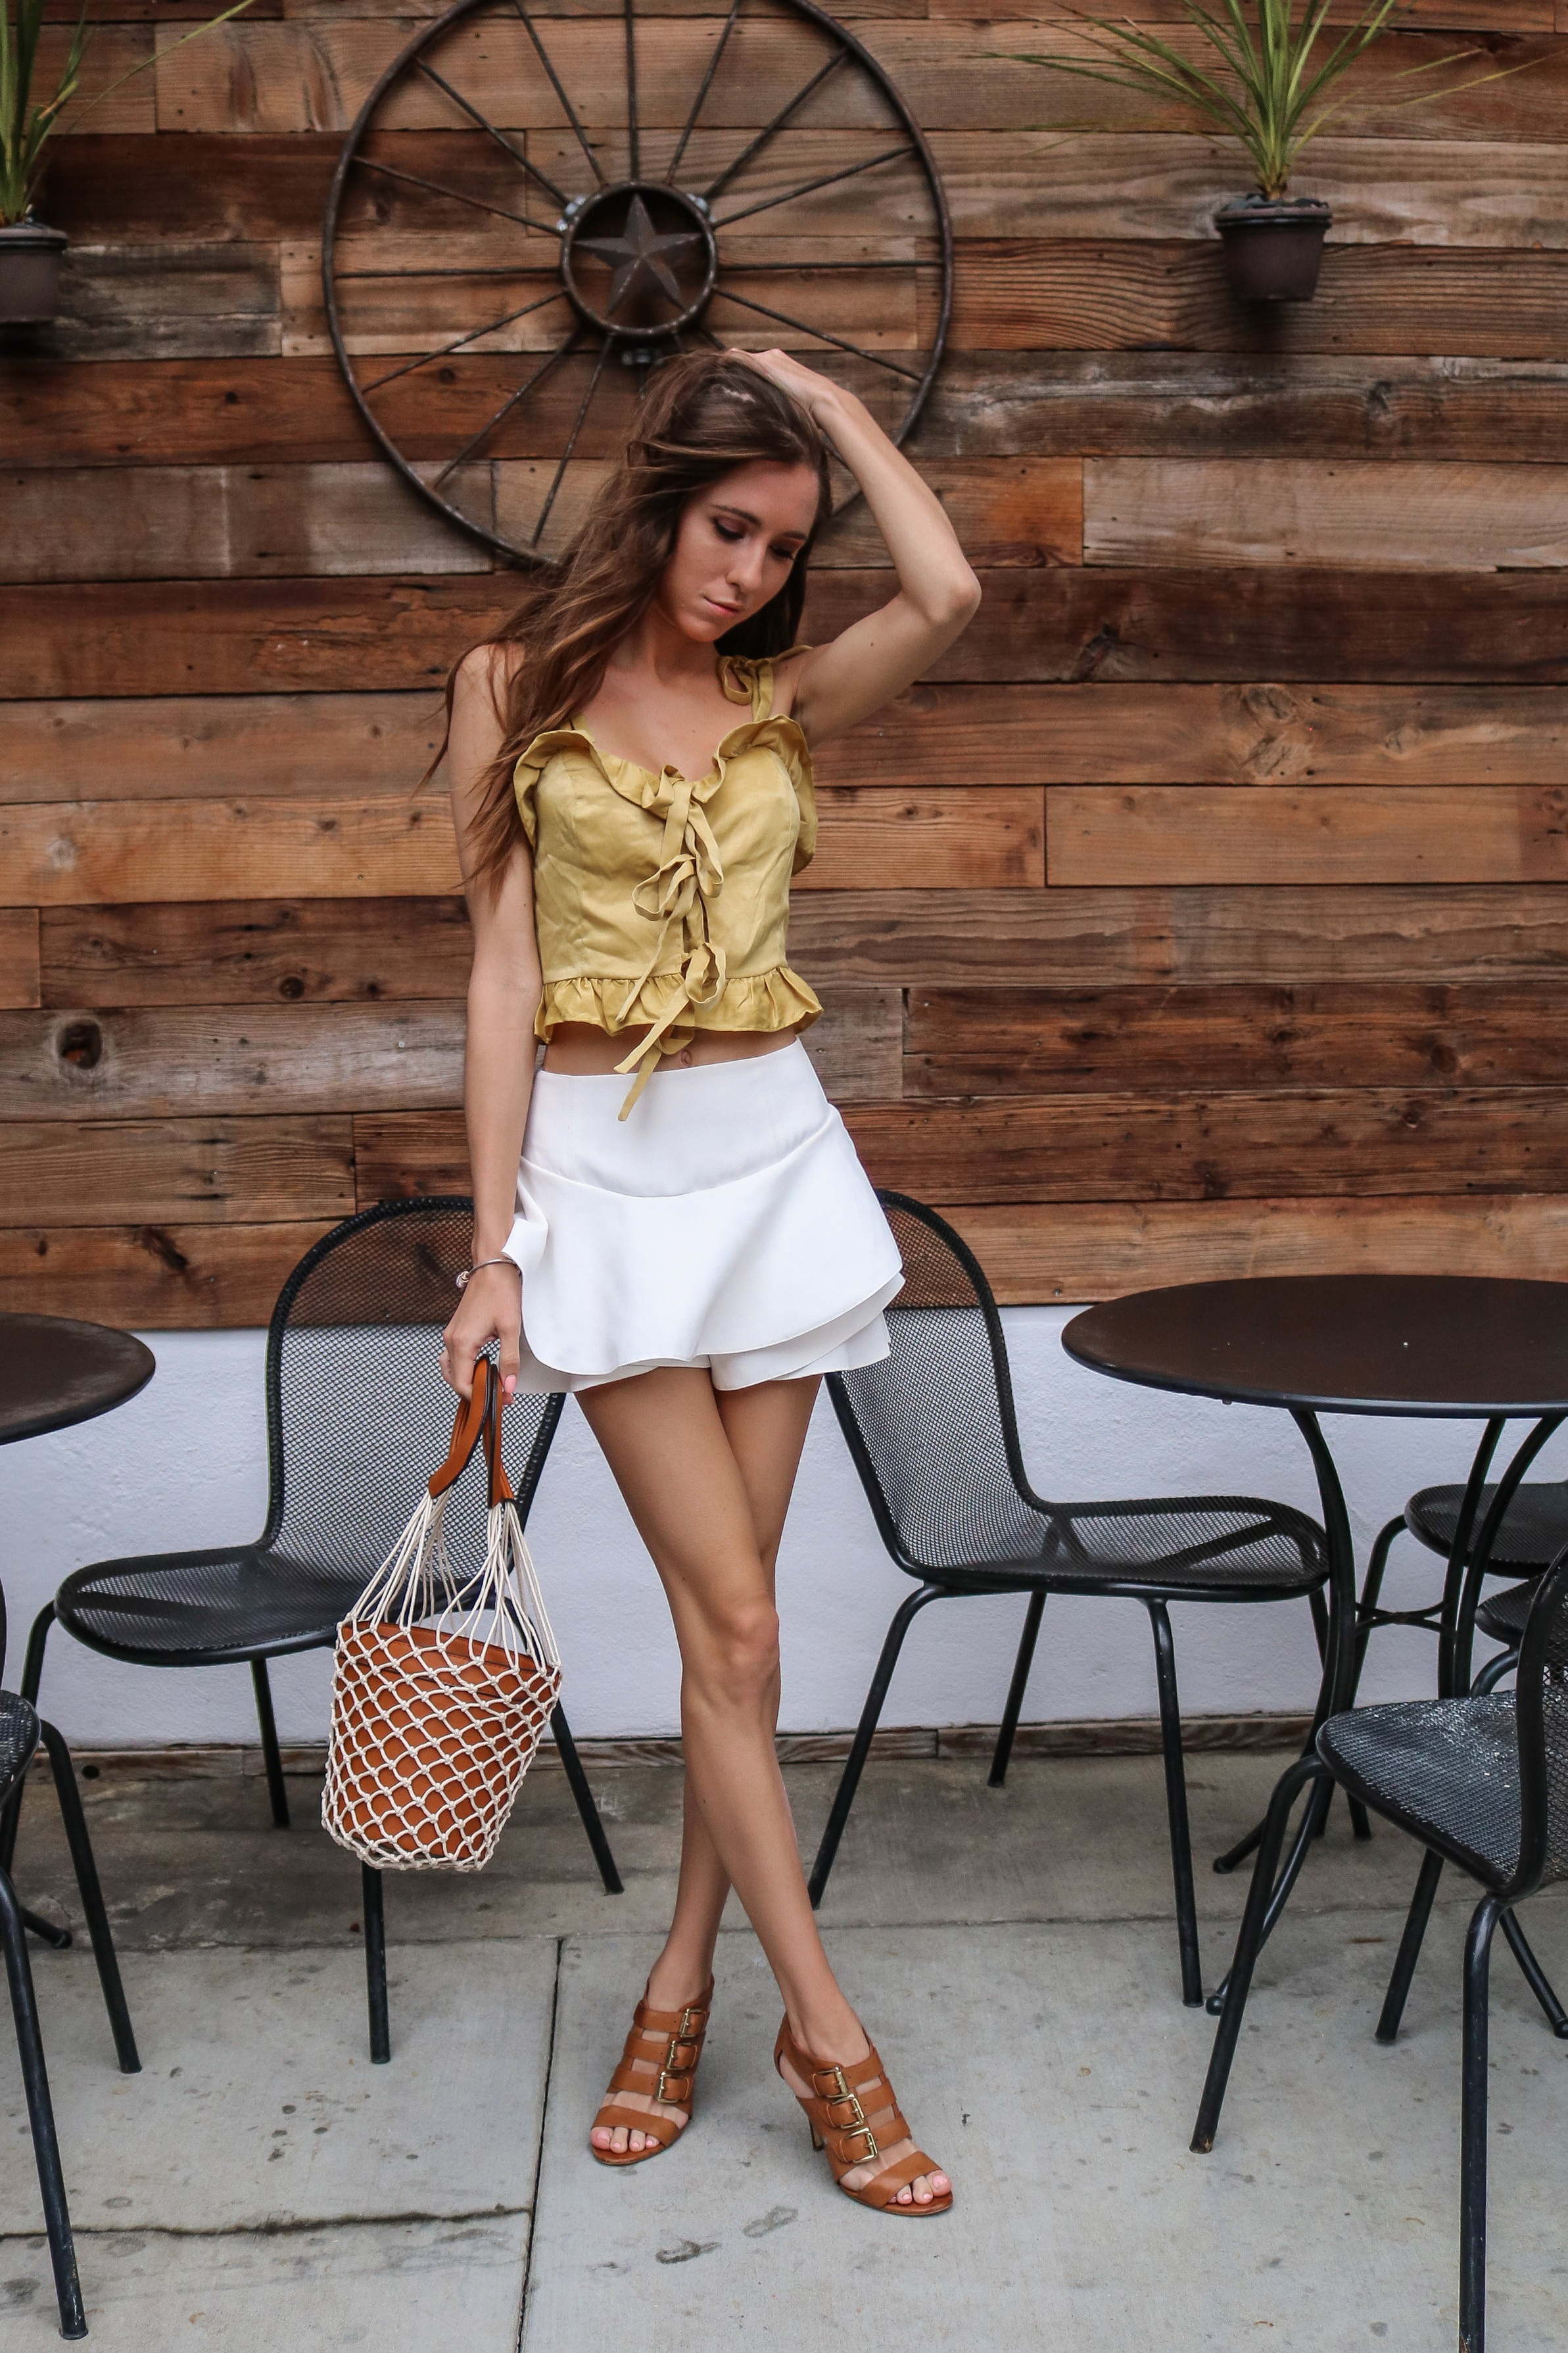 The+Hungarian+Brunette+Yellow+satin+top+and+net+bag+%289+of+12%29.jpg